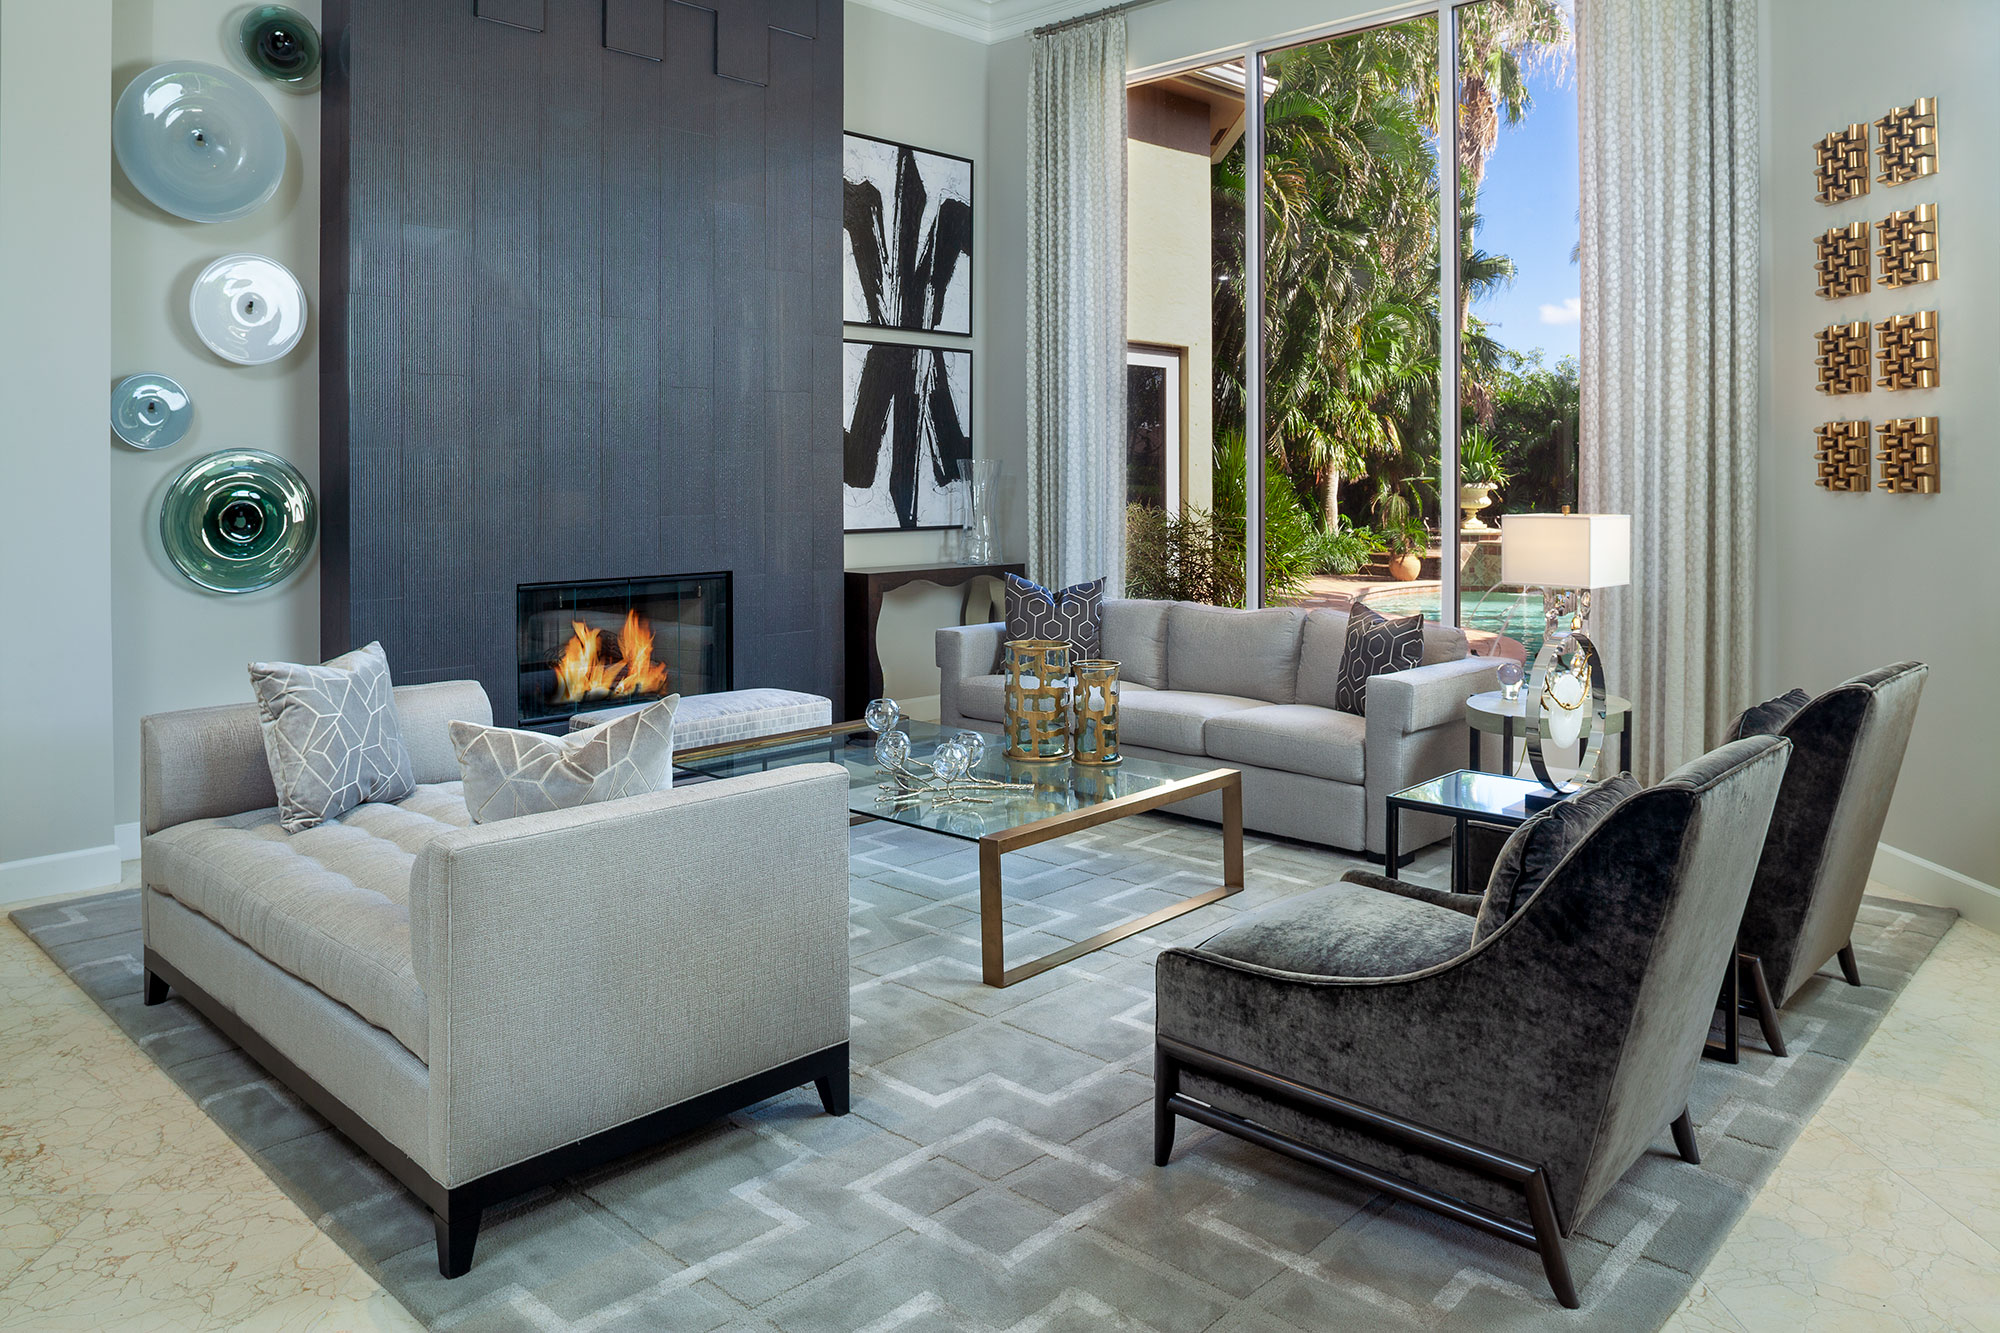 Palm Beach Gardens Interior Design Project